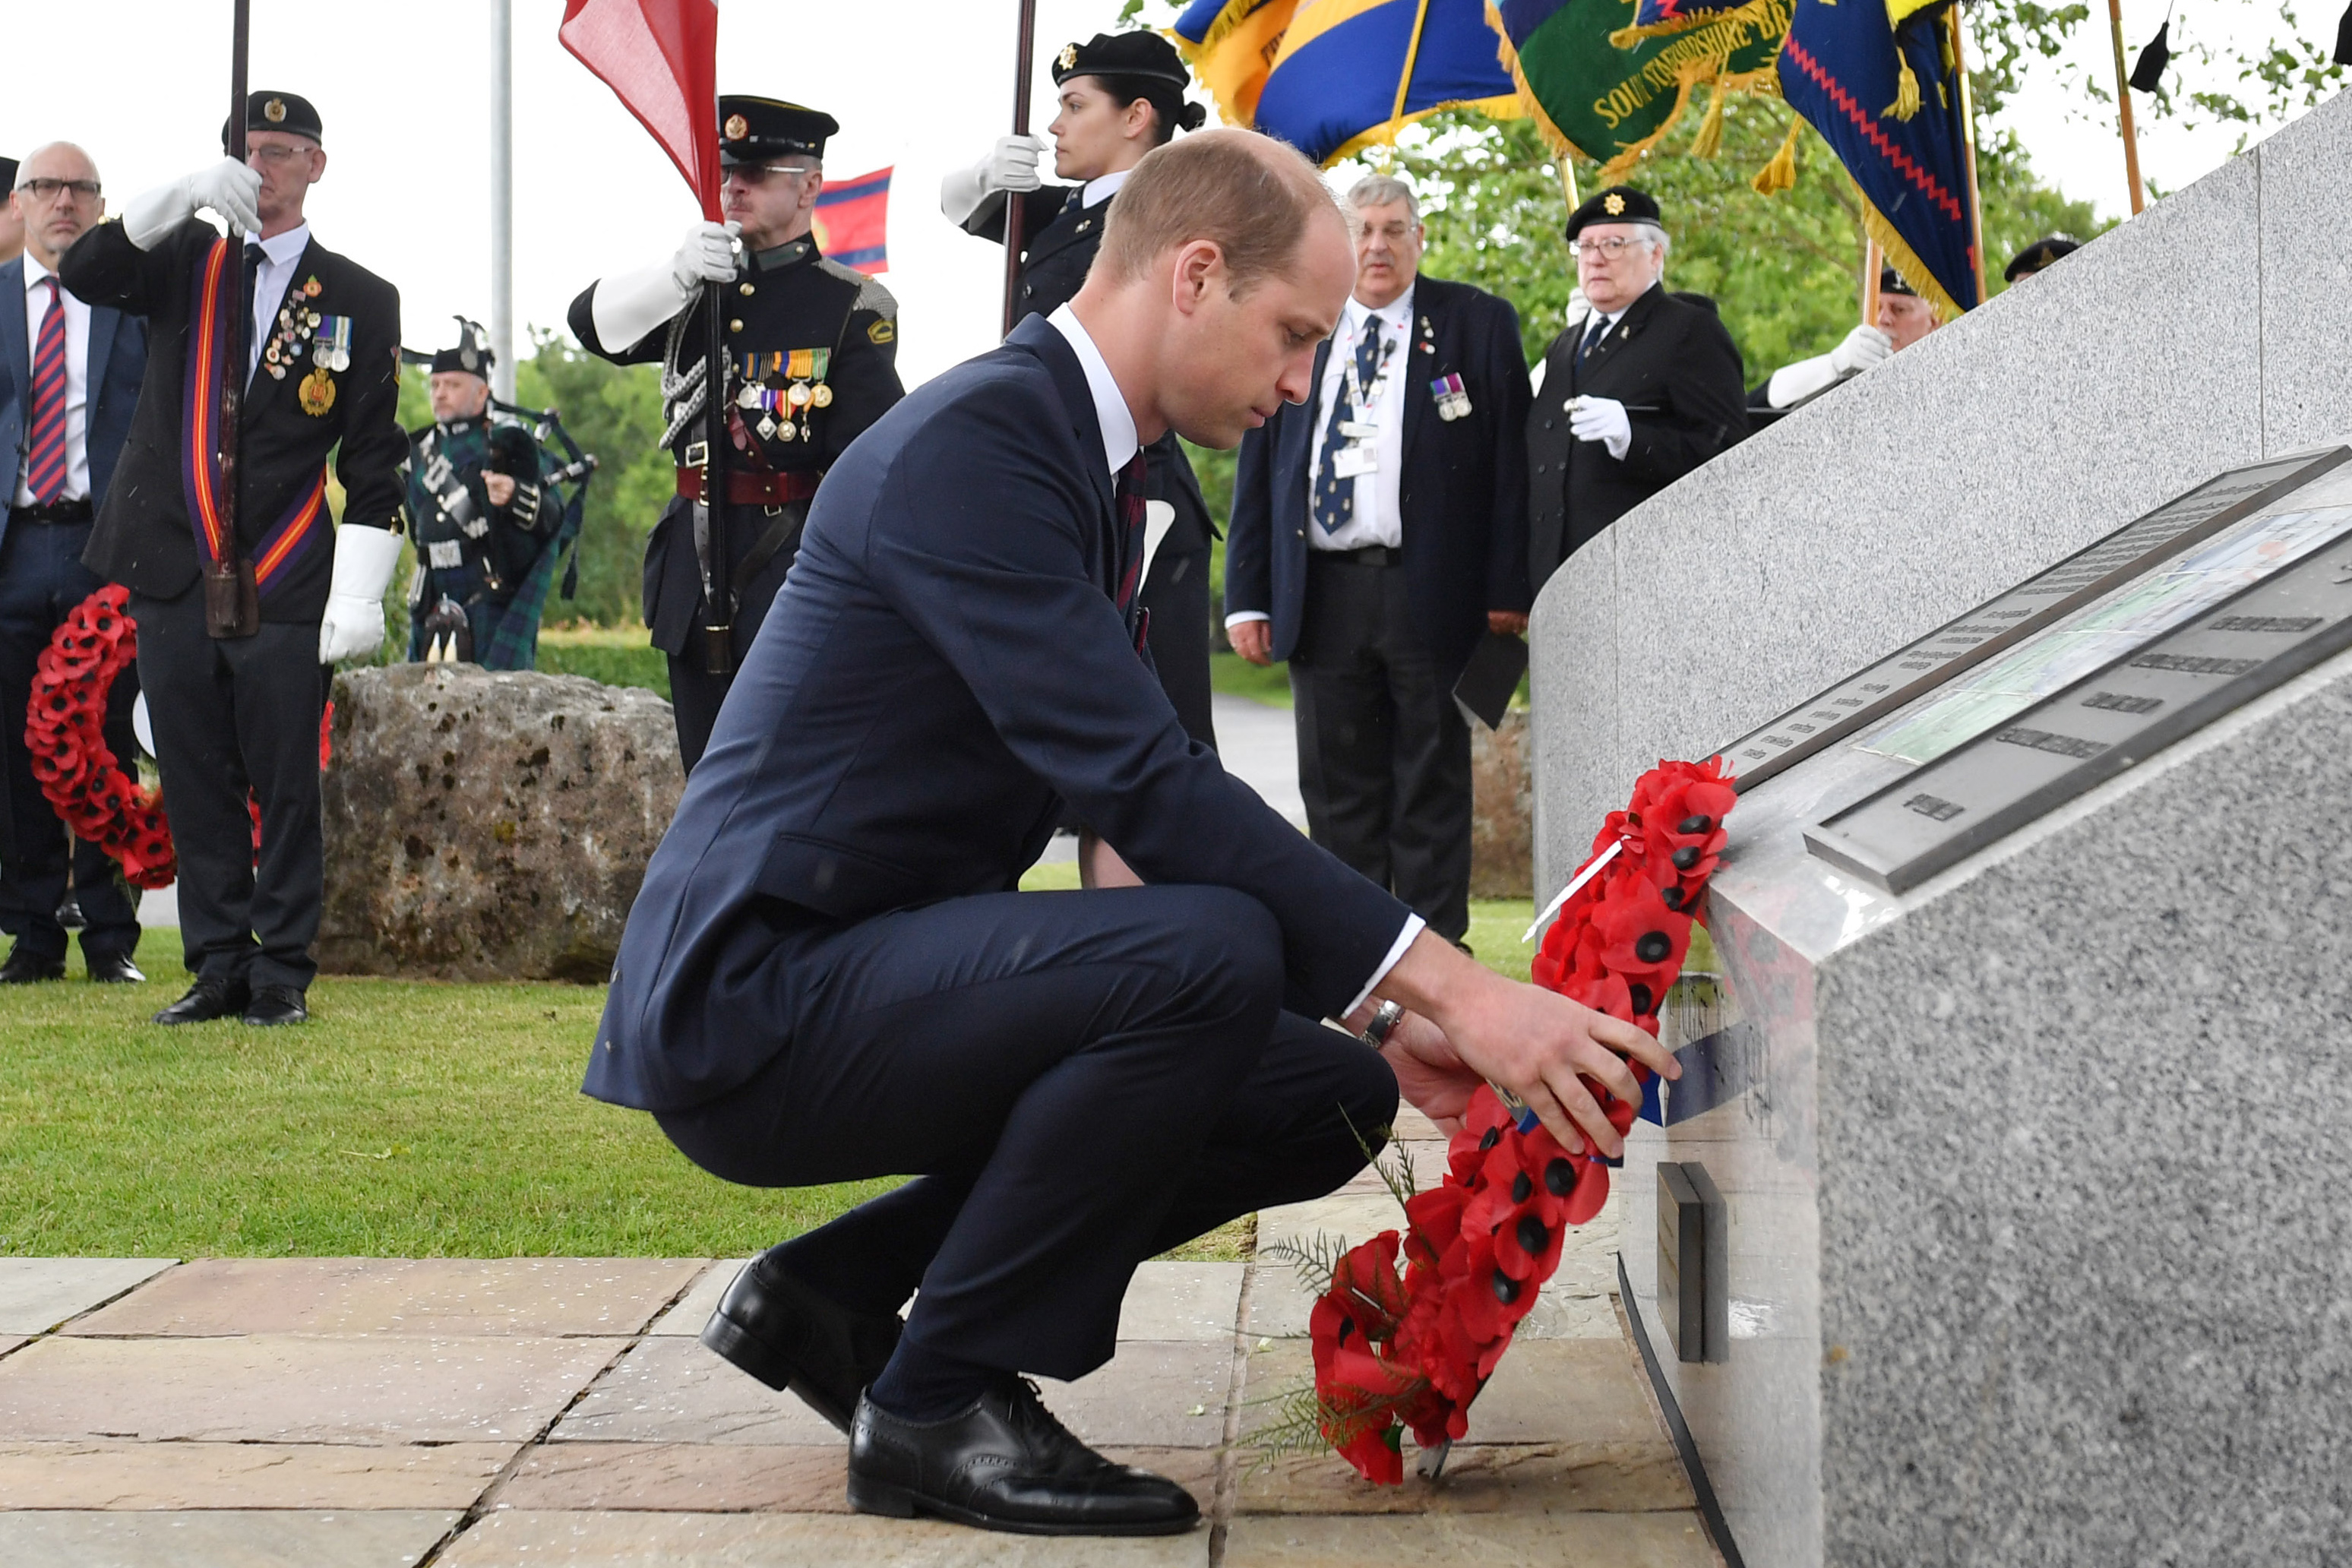 Prince William lays a wreath in Staffordshire, central England.